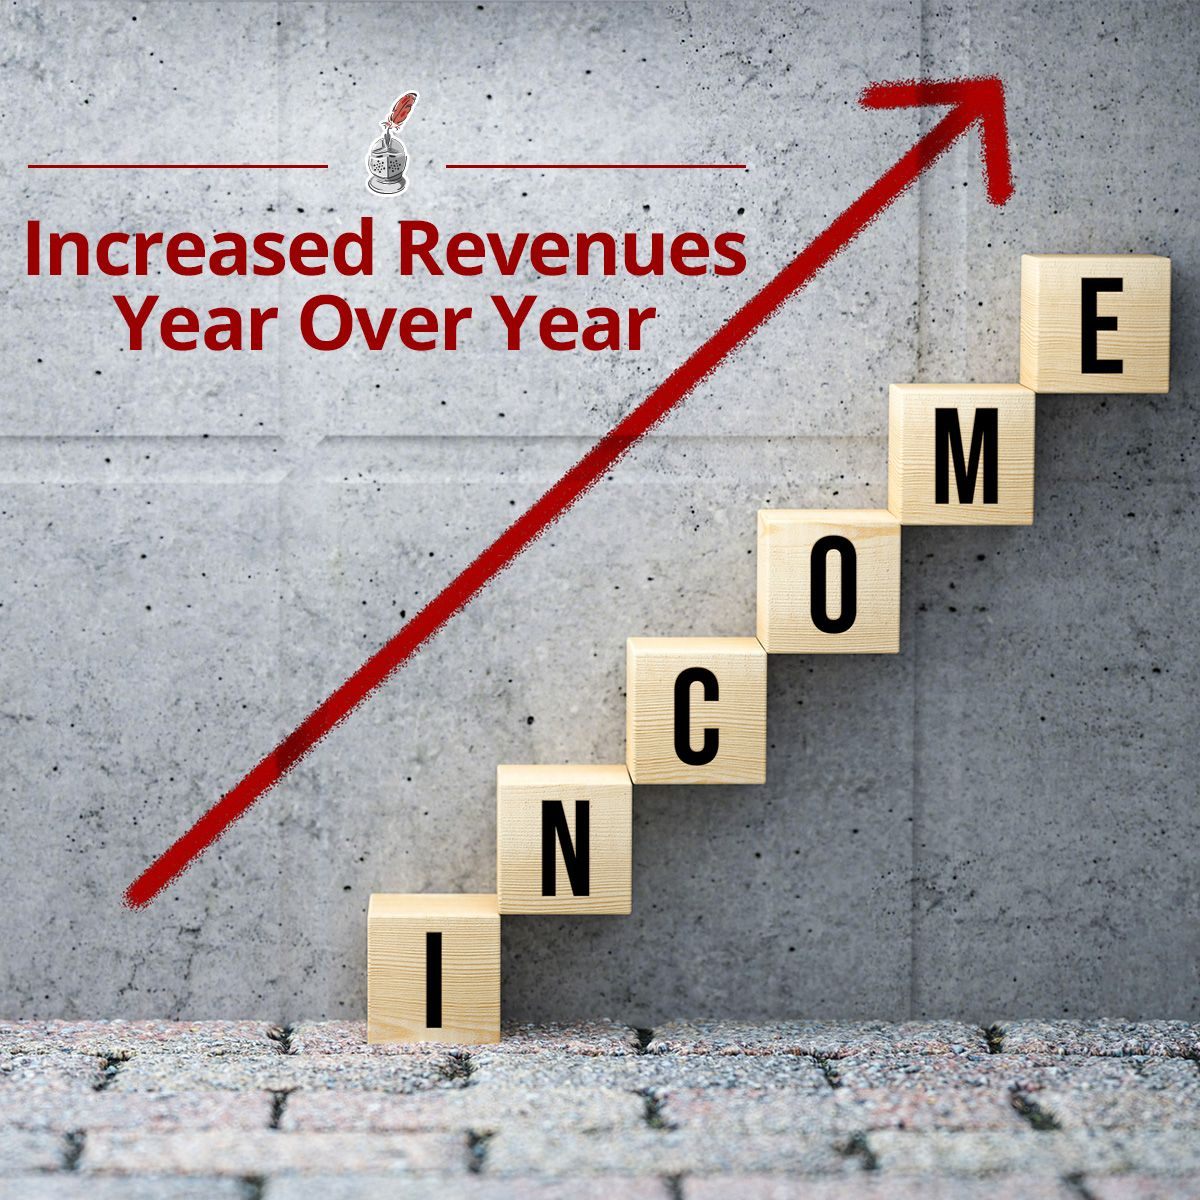 Increased Revenues Year Over Year